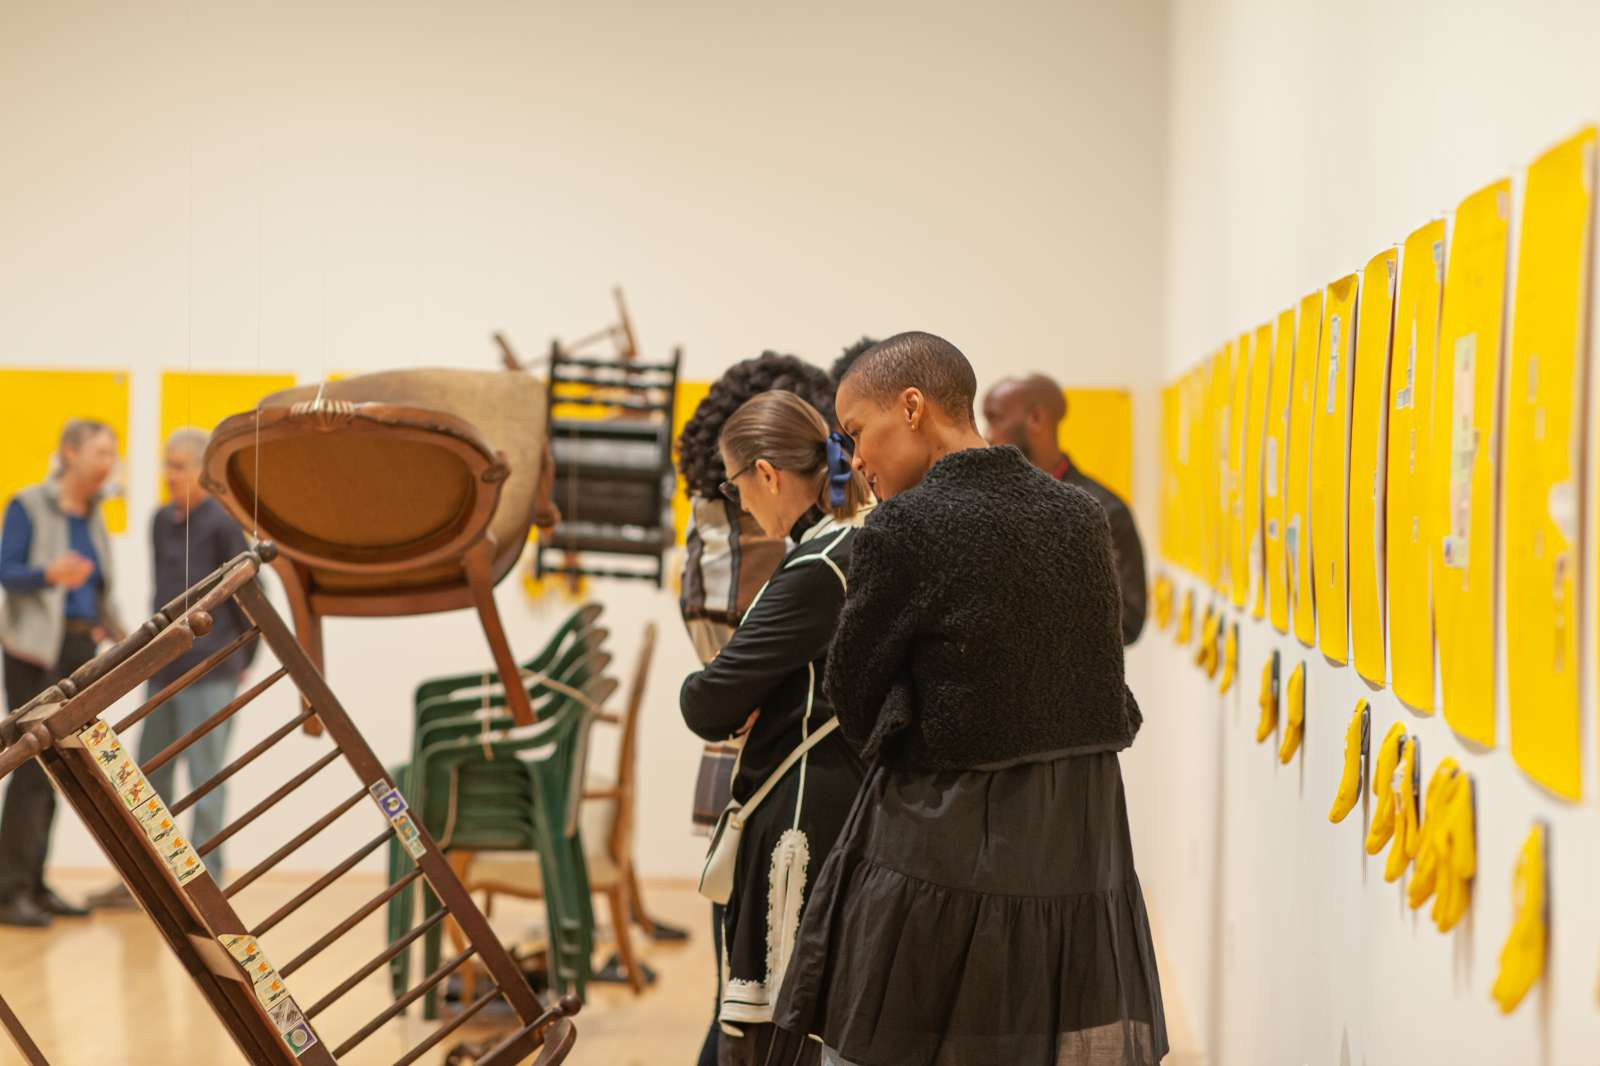 Serge Attukwei Clottey: Softening Borders, Moody Center for the Arts. Photo by Alyson Hunstman.